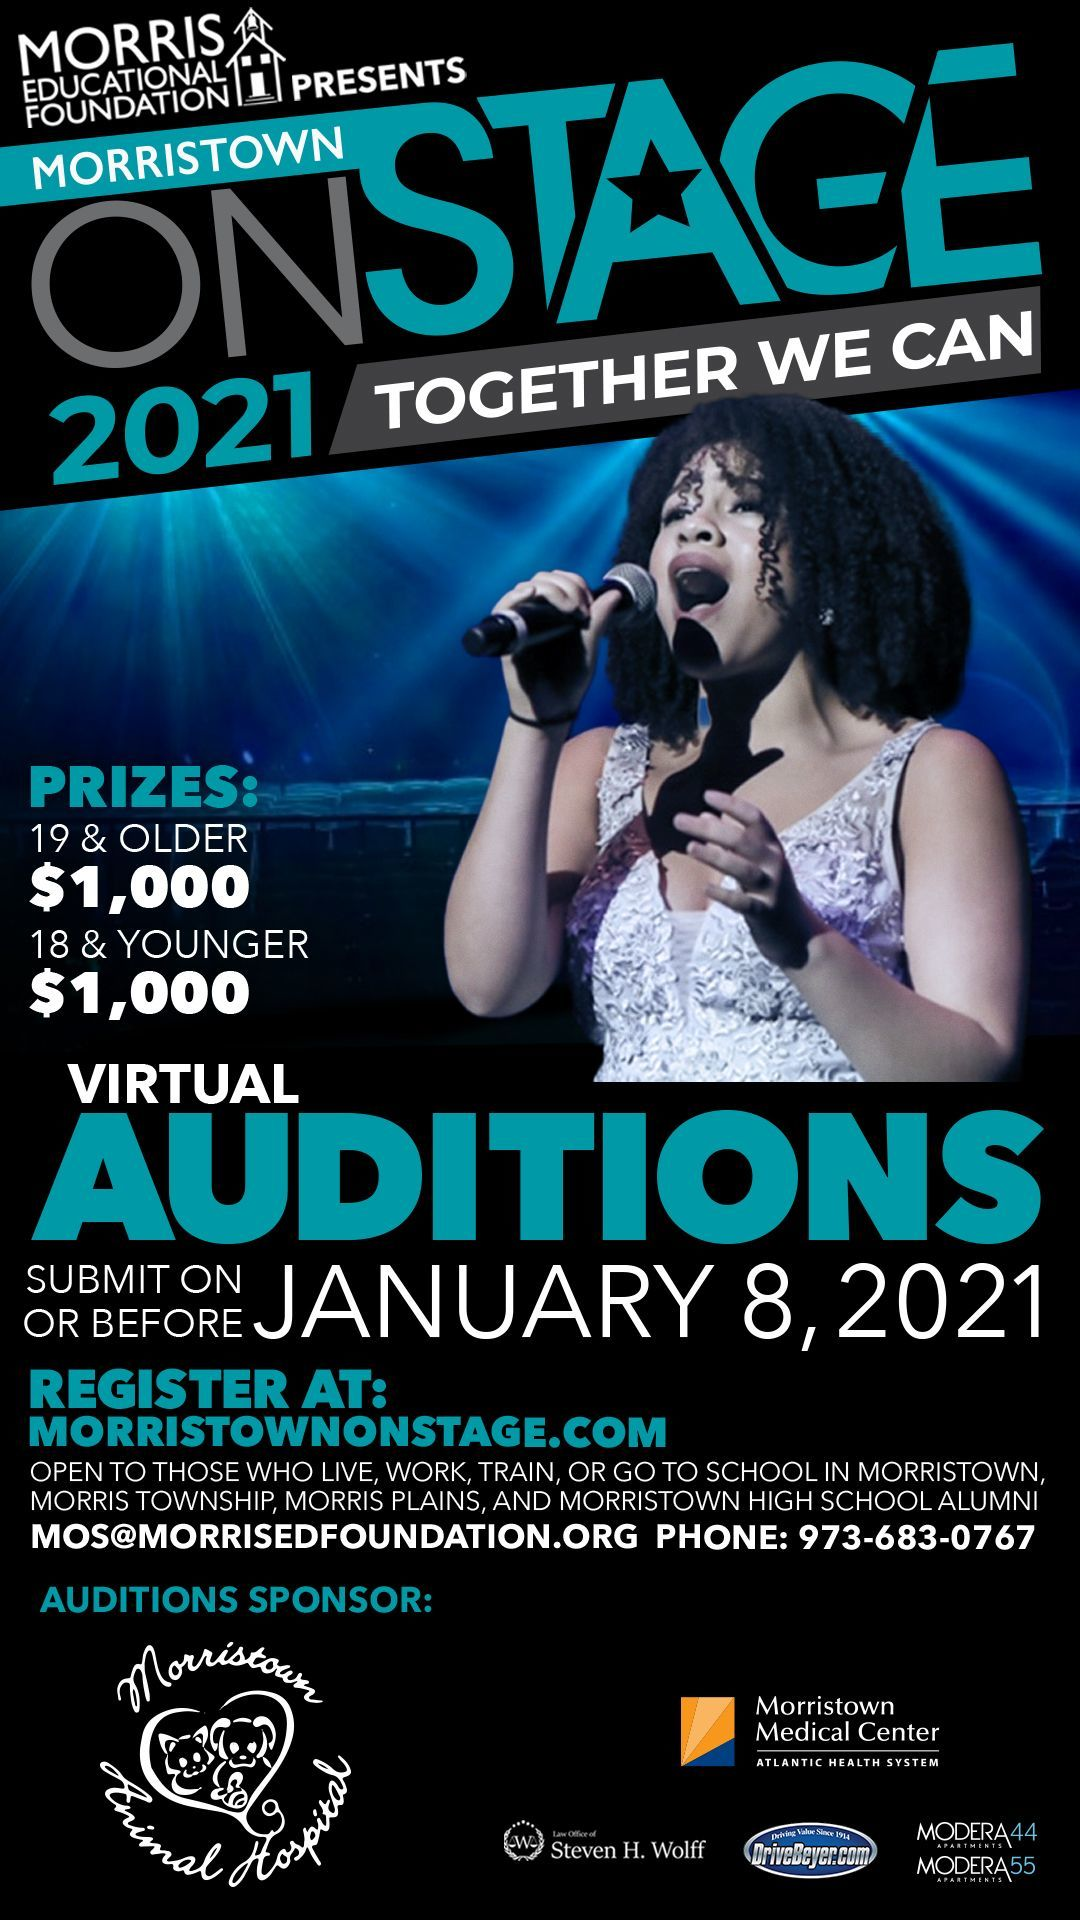 Morristown ONSTAGE Audition Registration Opens